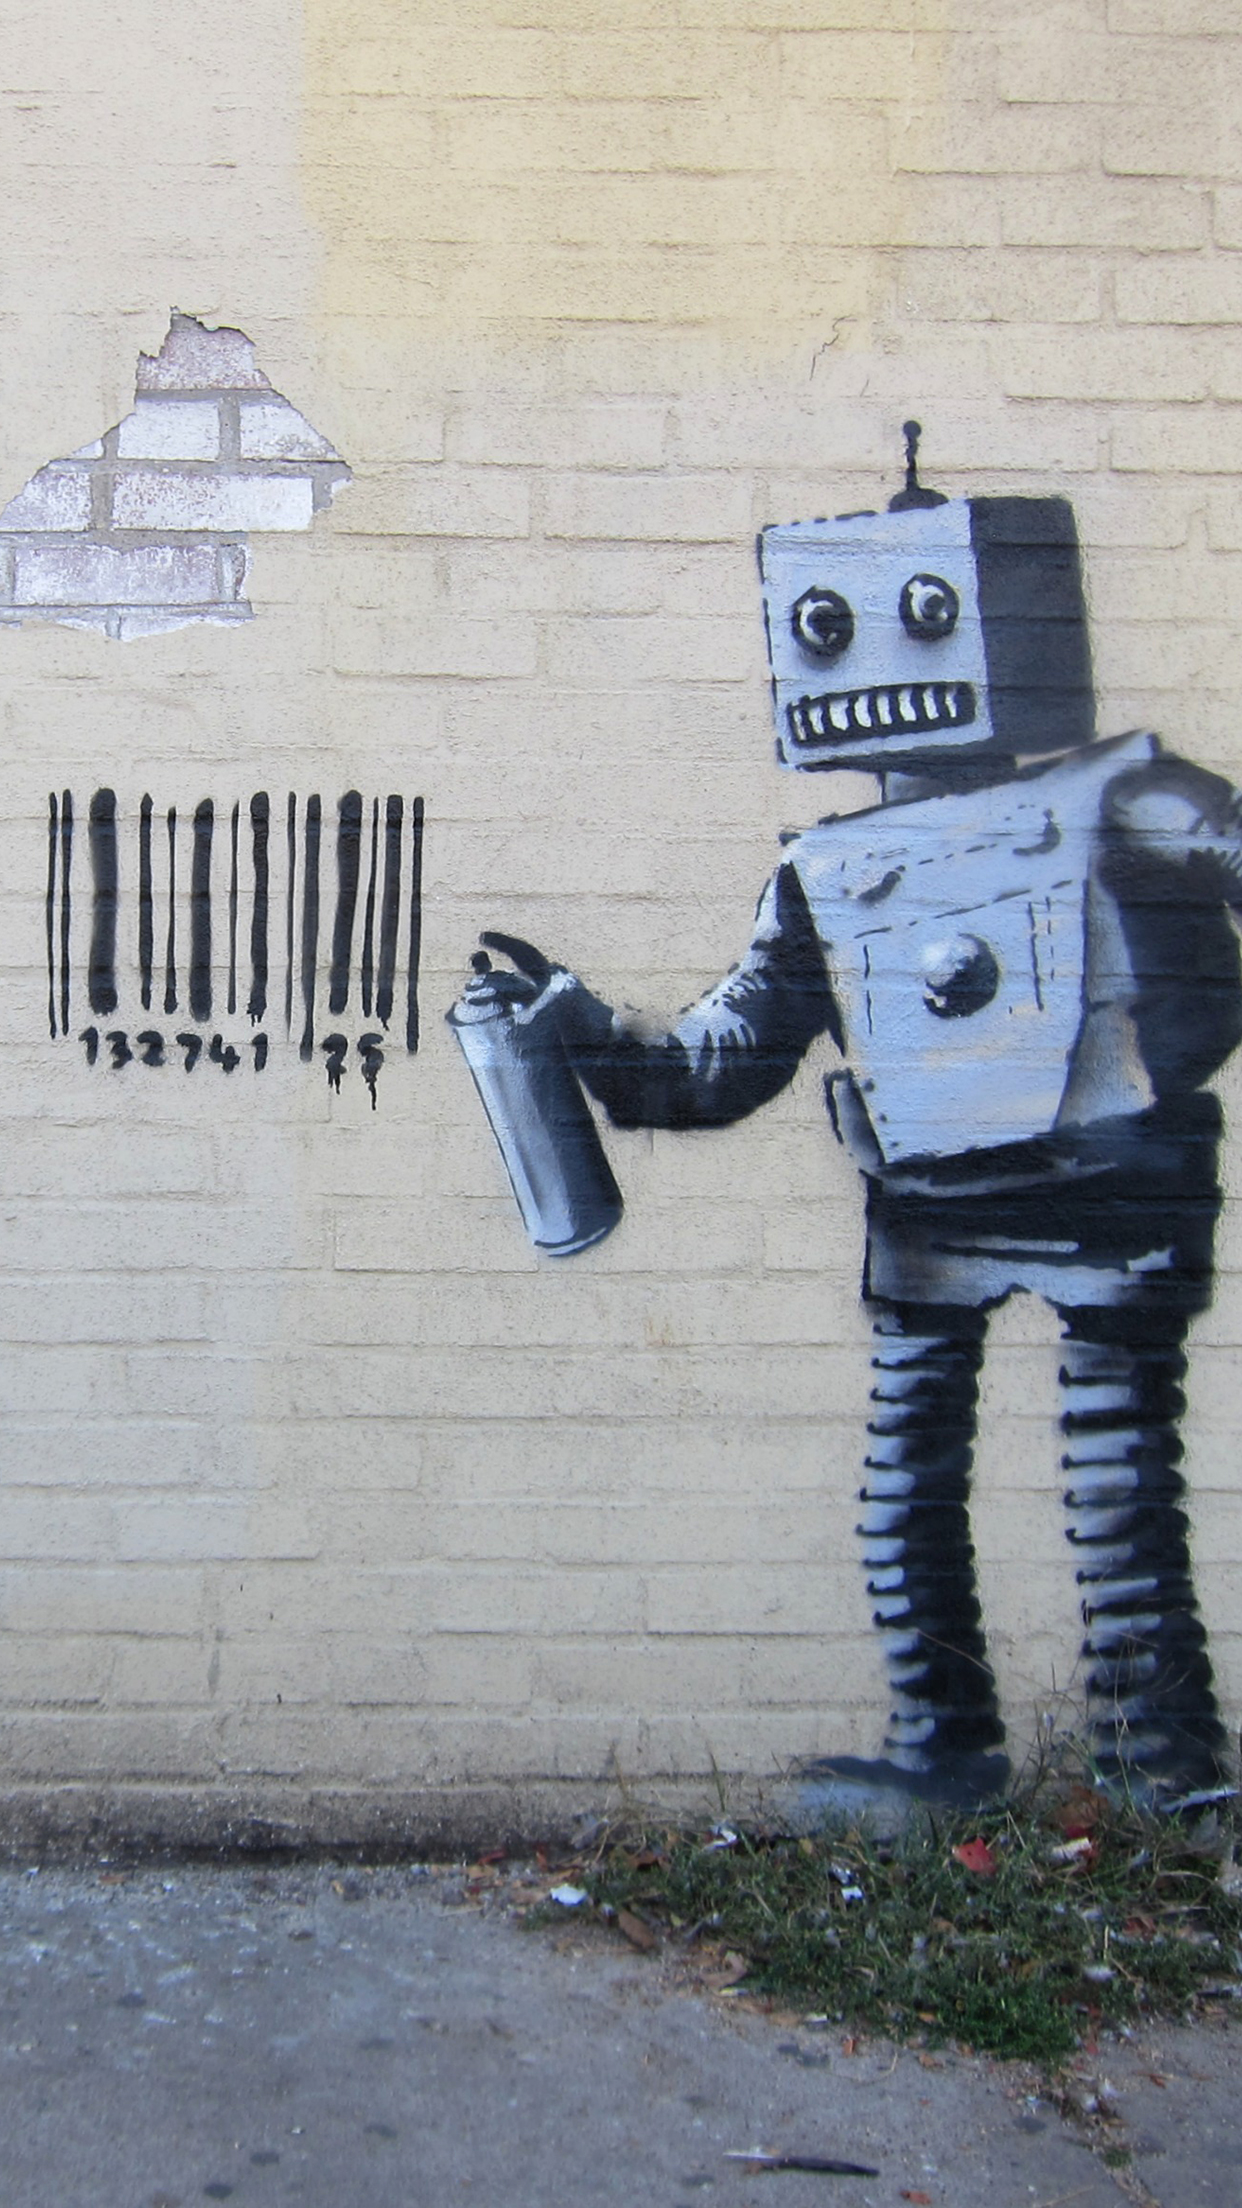 Banksy robot iPhone 3Wallpapers Parallax Les 3 Wallpapers iPhone du 1242x2208